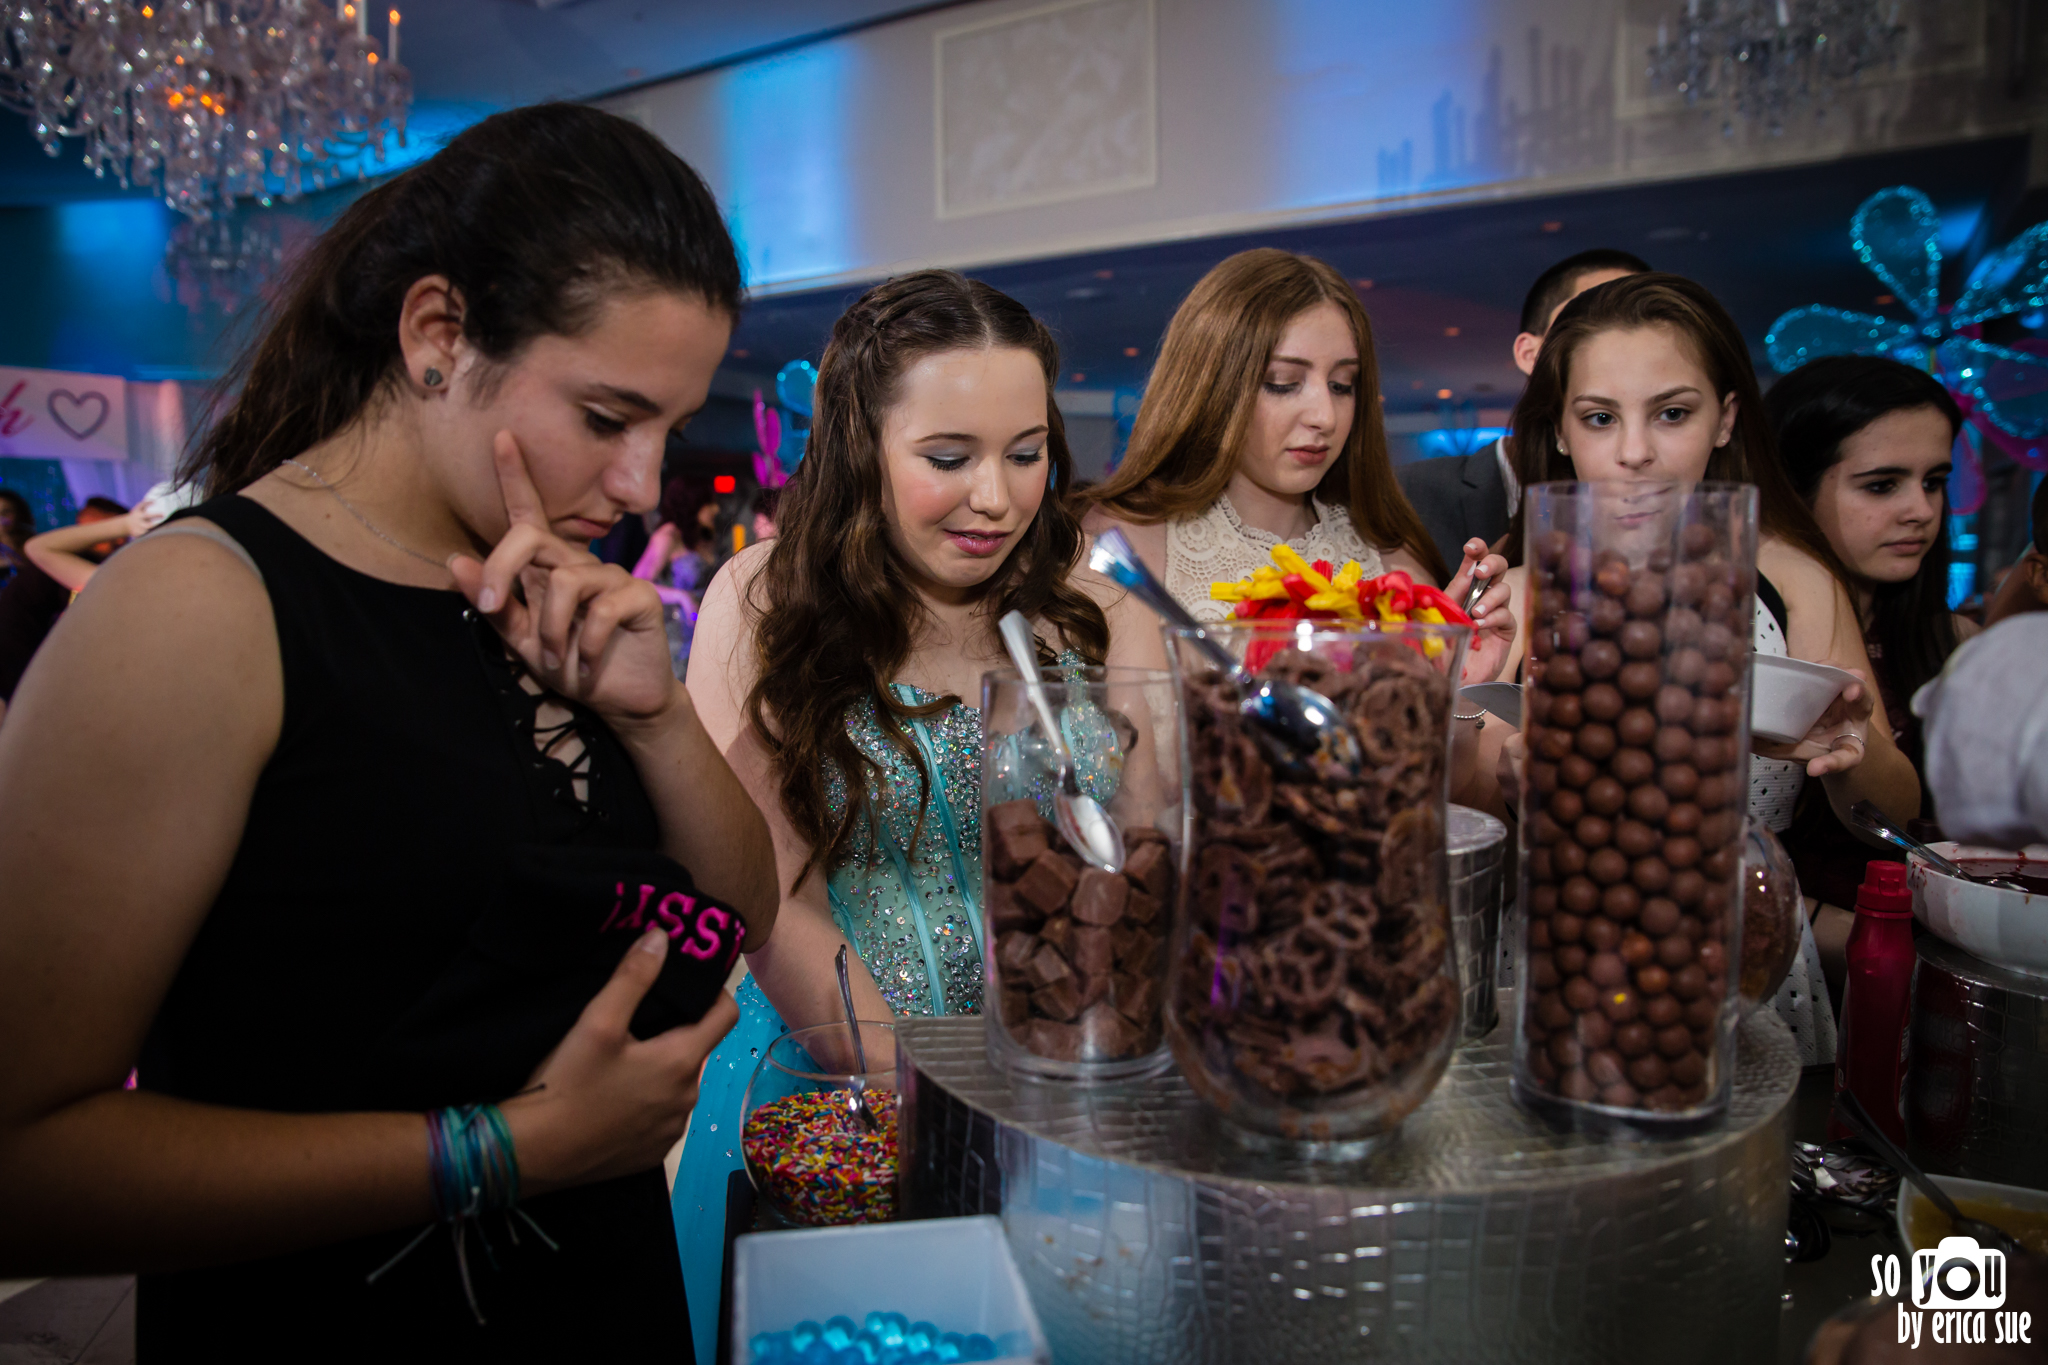 bat-mitzvah-photography-south-florida-broward-kol-ami-plantation-so-you-by-erica-sue-4454.jpg